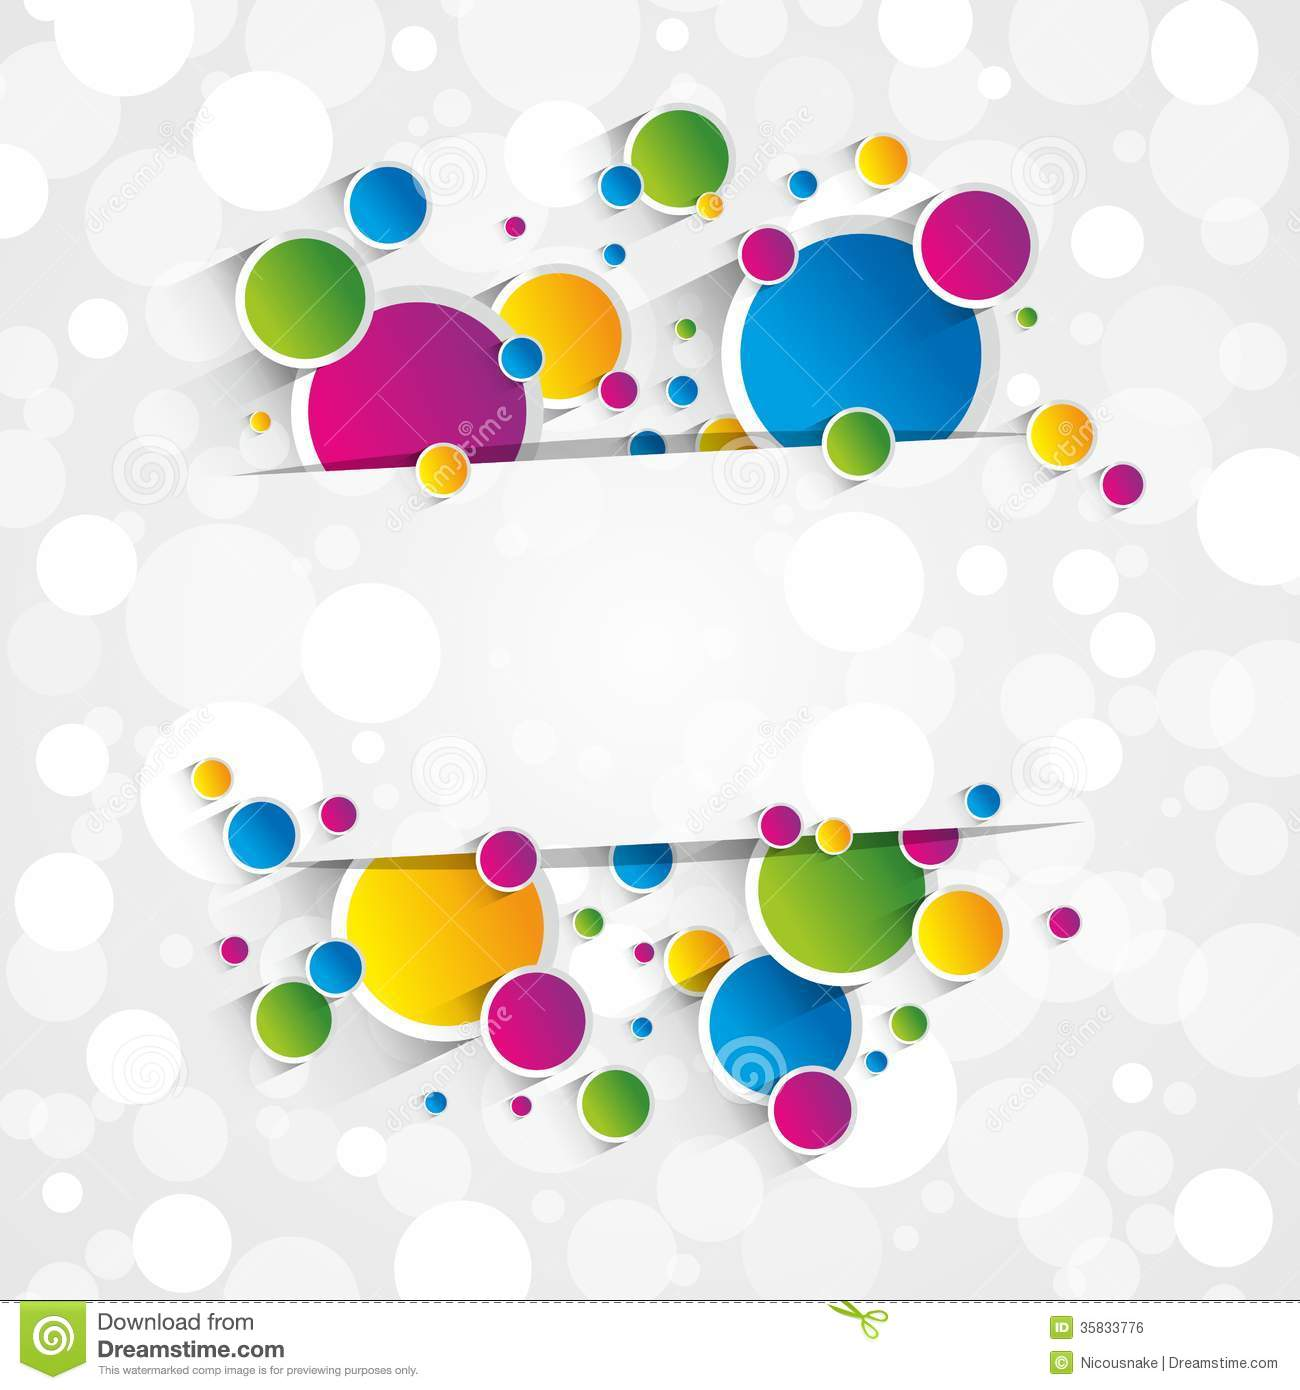 Creative Wallpapers: Creative Colorful Circles Background Stock Vector